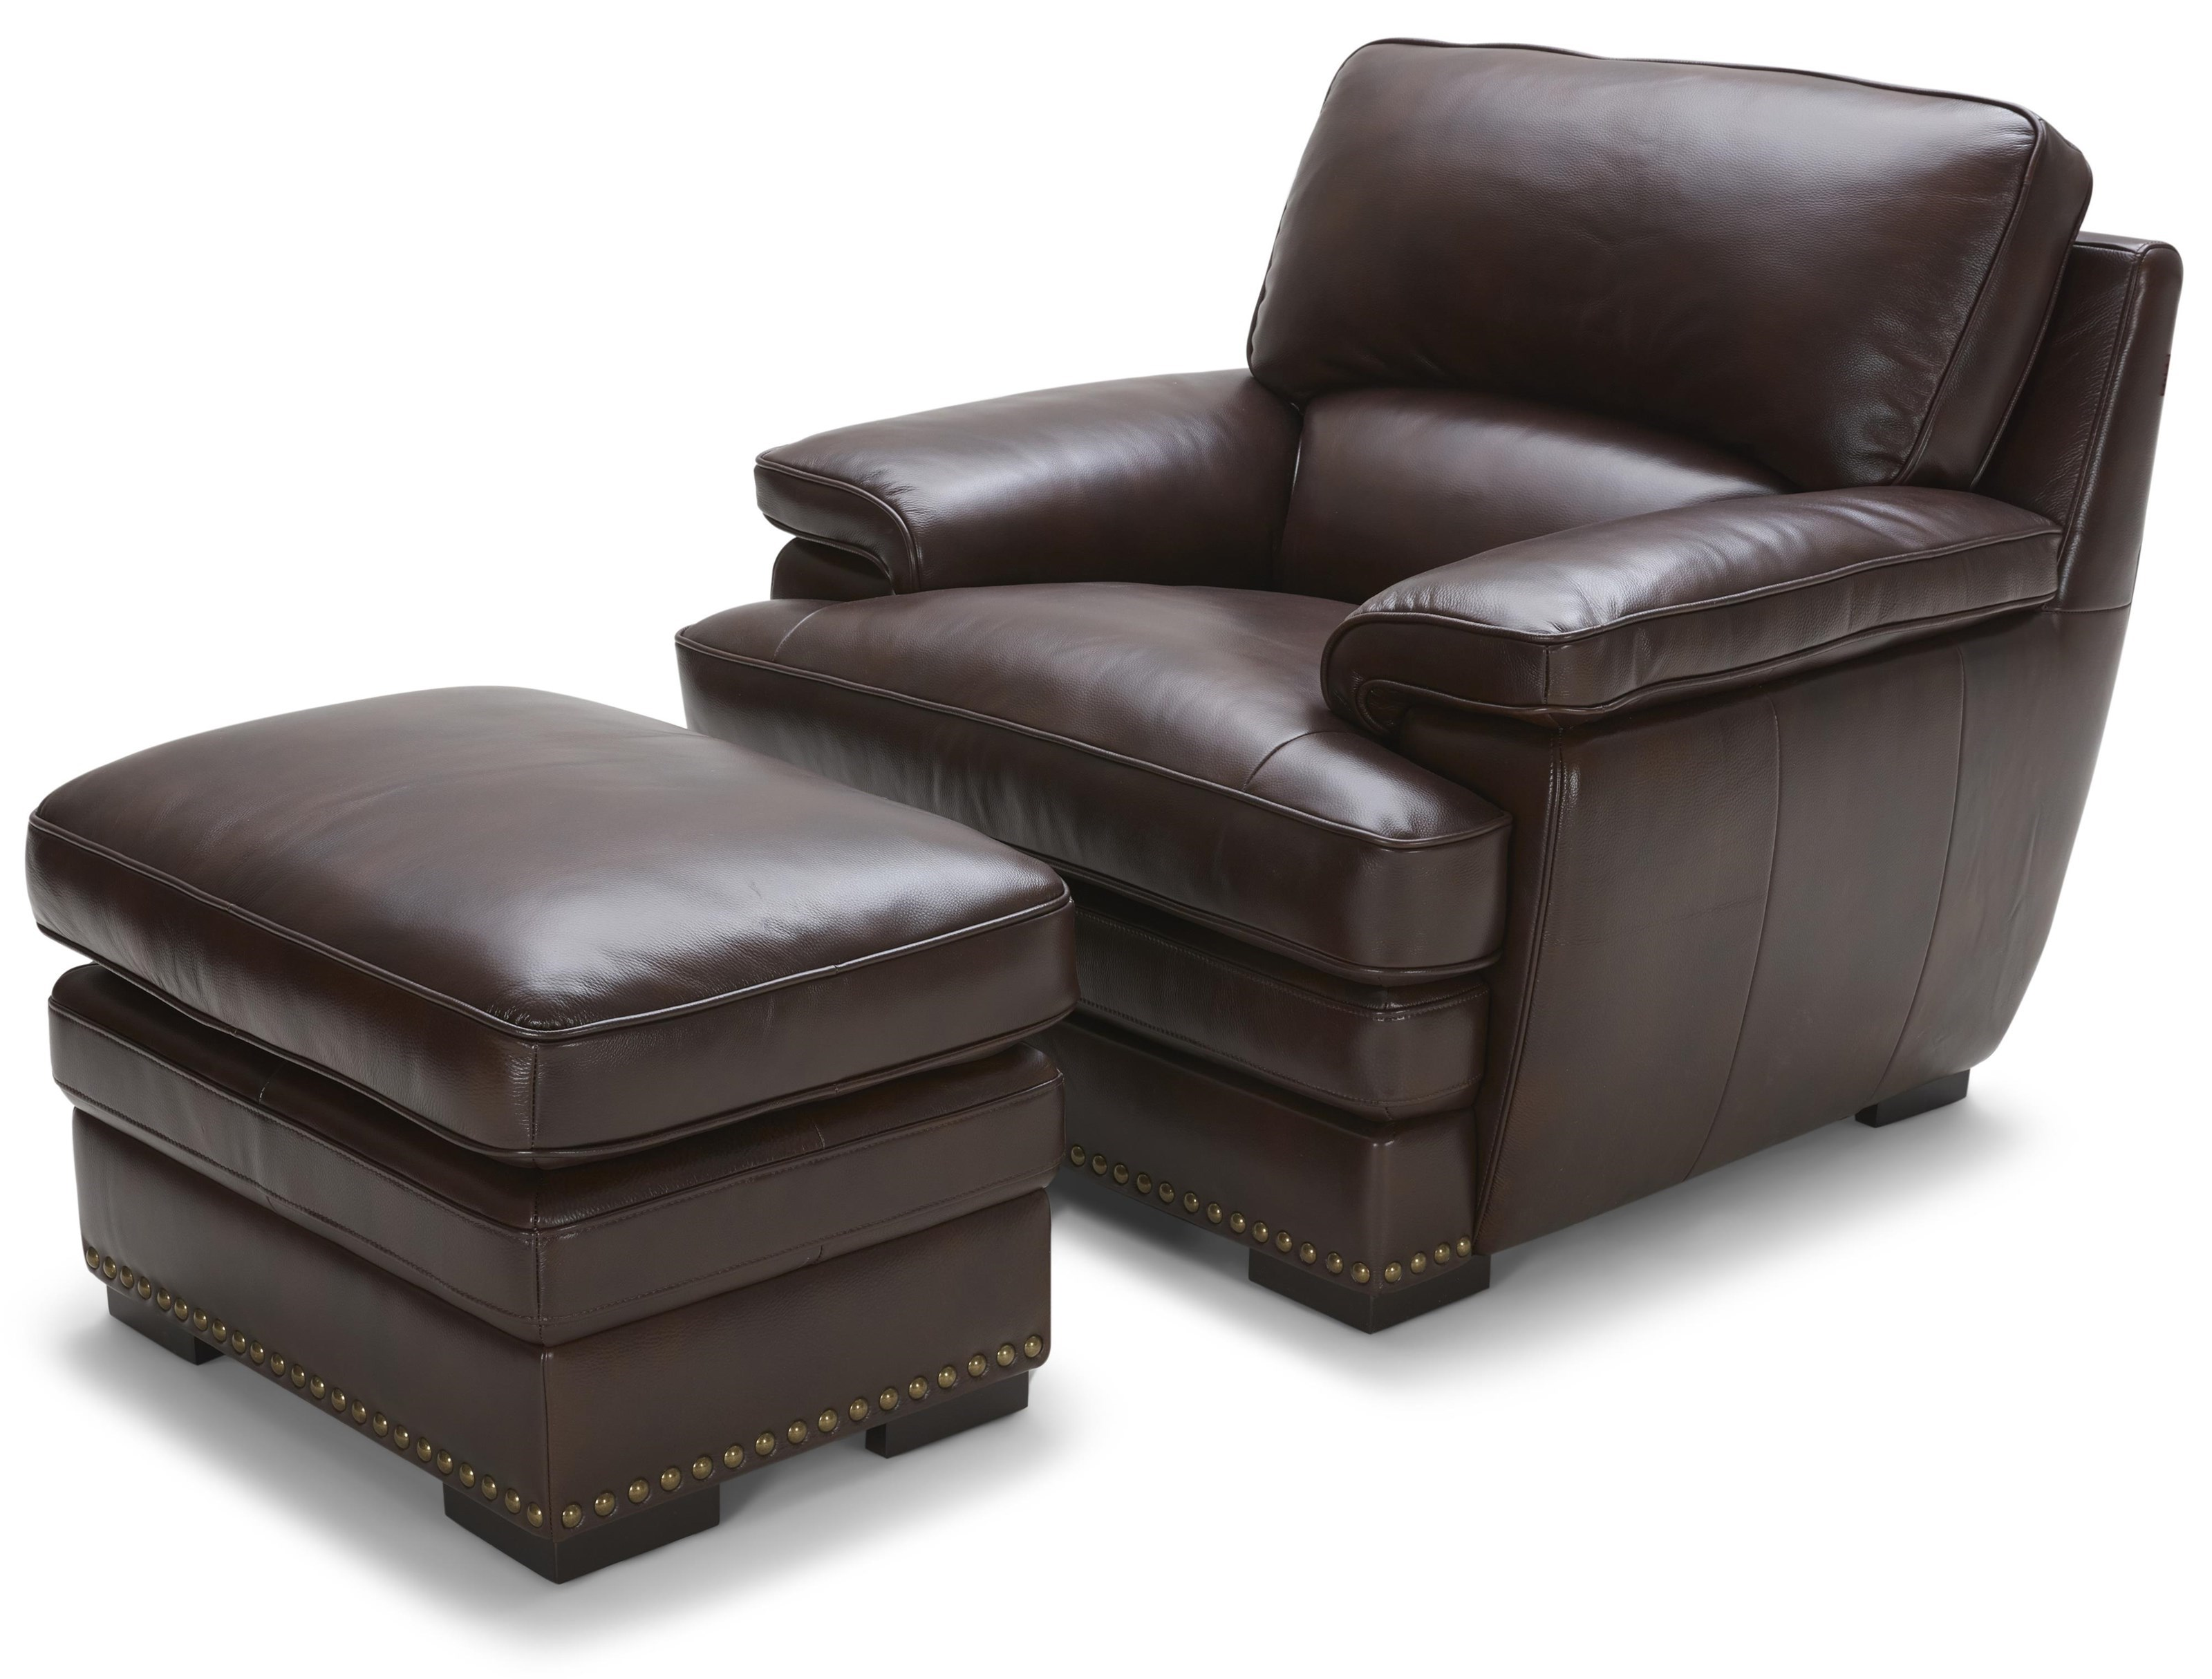 Charmant Warehouse M 3301Brown Leather Chair U0026 Ottoman ...